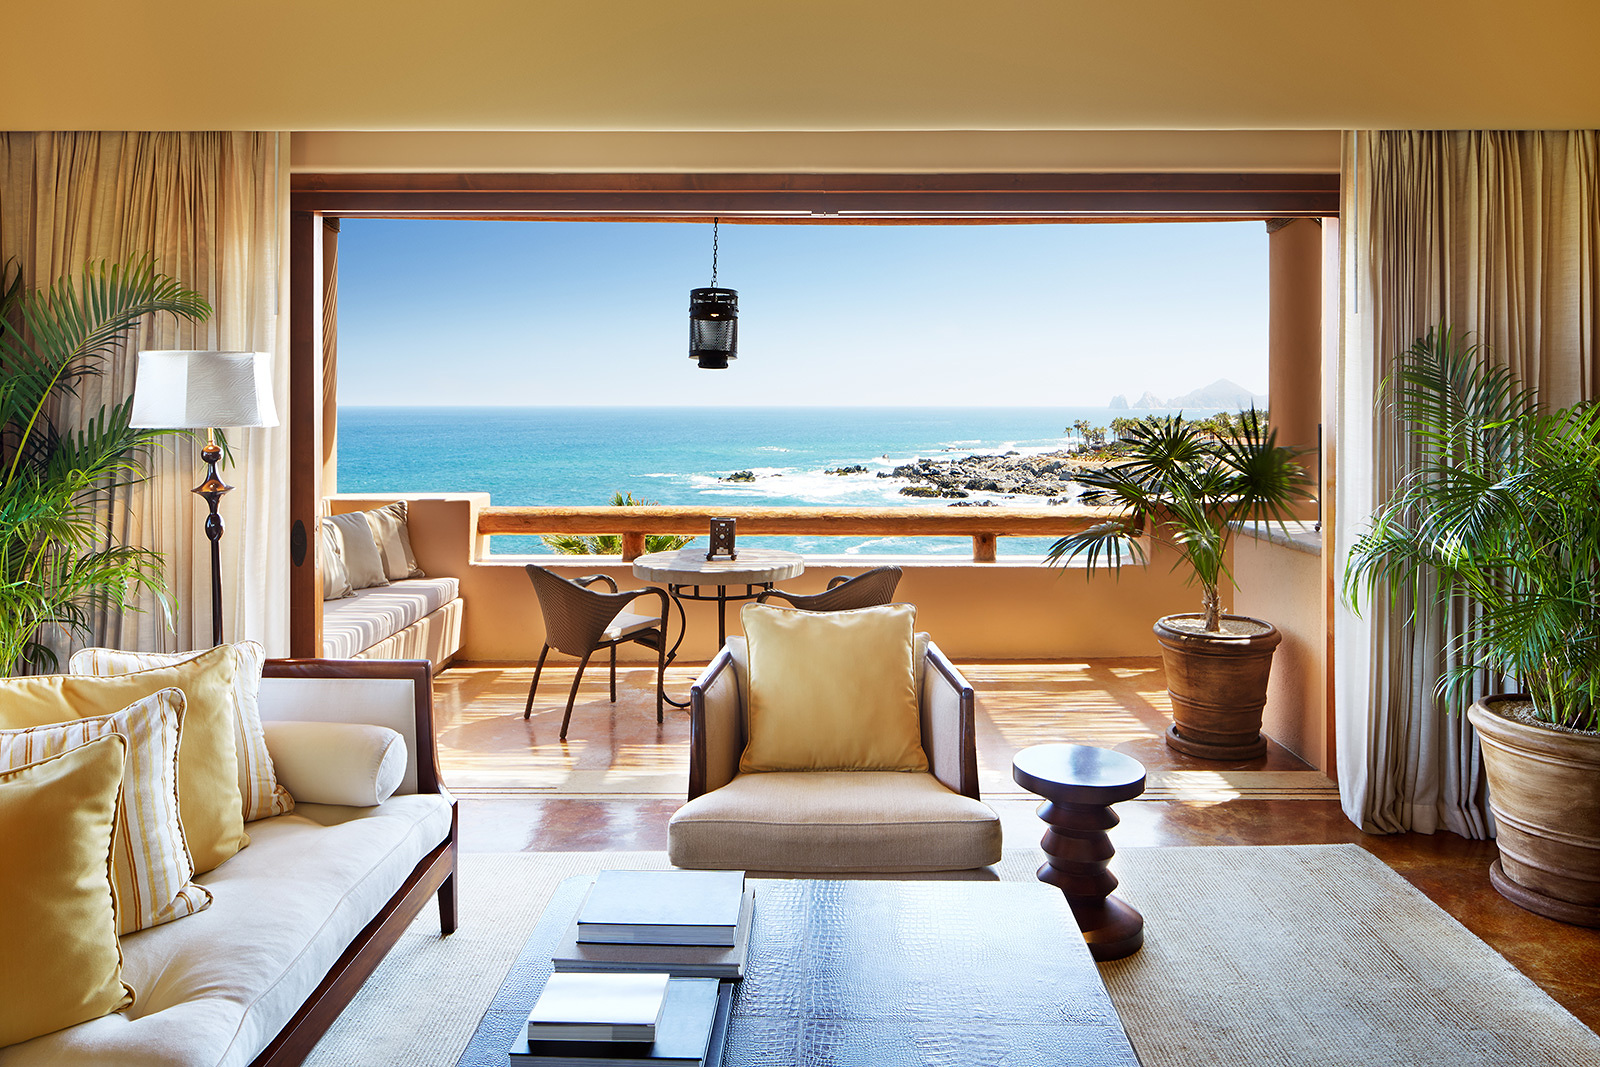 Suite at Esperanza Resort, Cabos  | Trinette+Chris Photographers